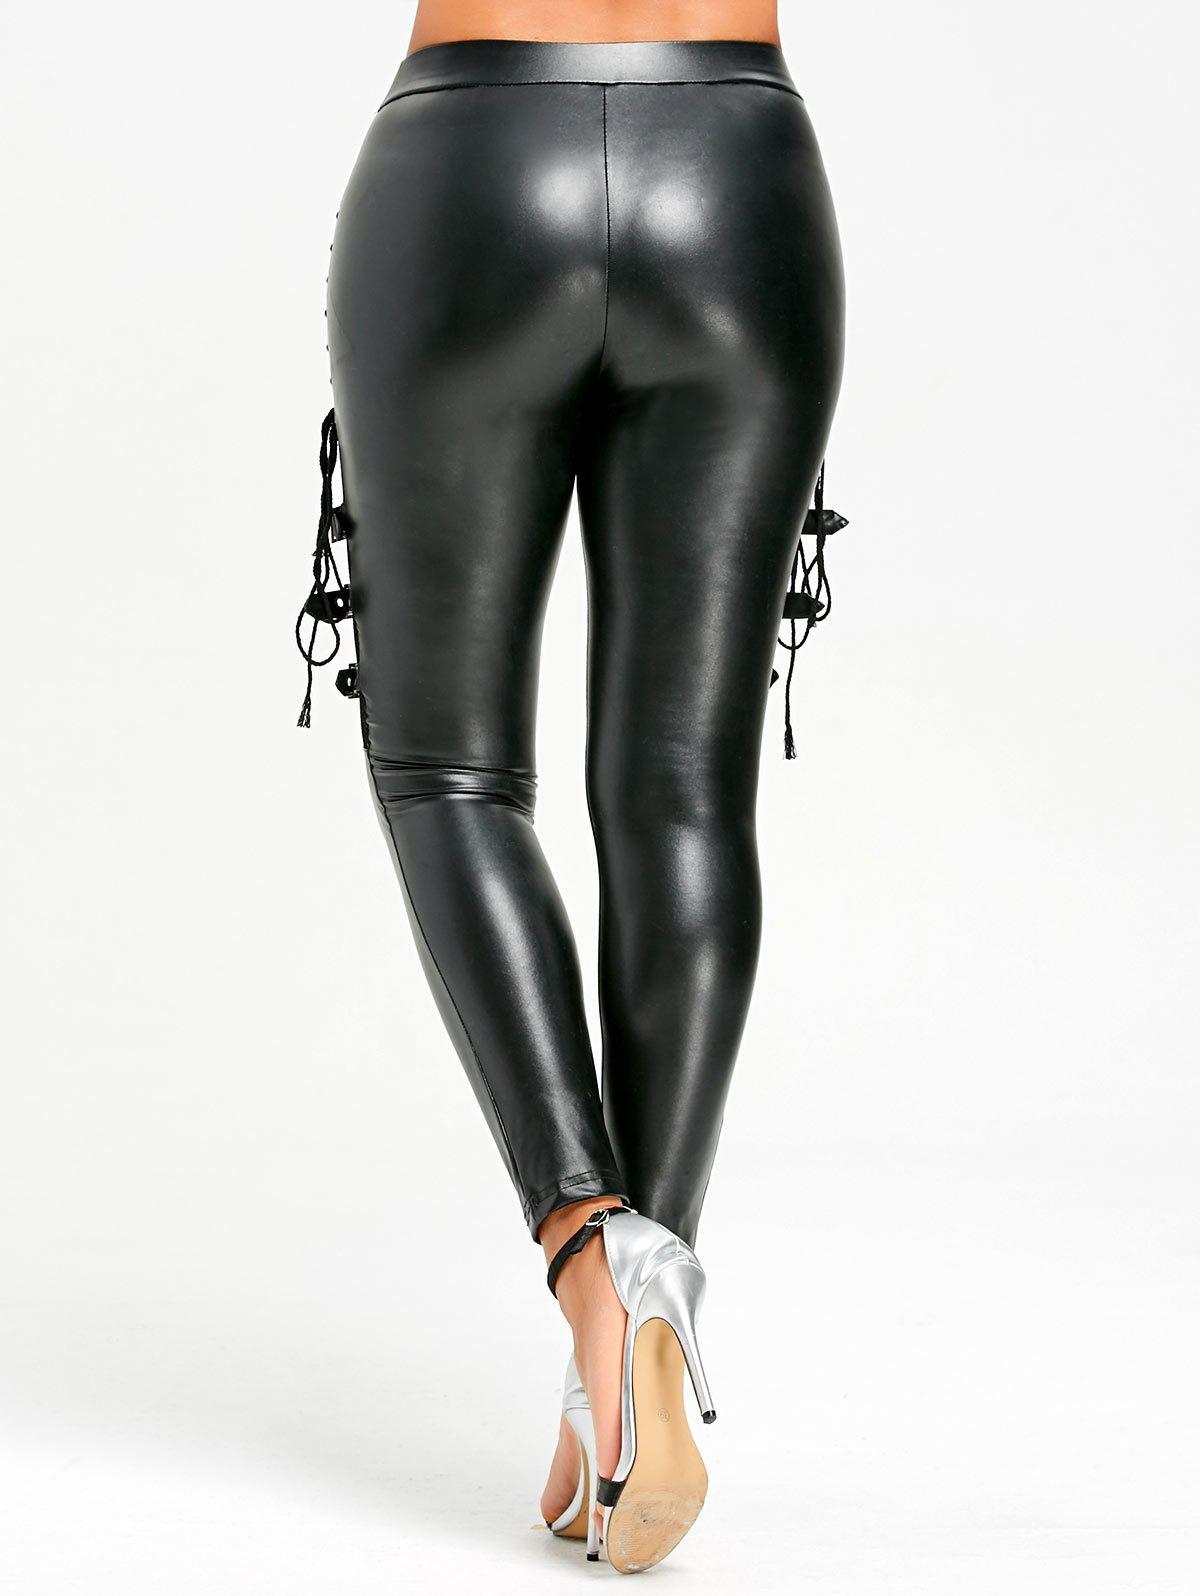 Frisk Me Leather Pants - Masstige Couture - A Luxury Fashion Boutique & Lifestyle Brand